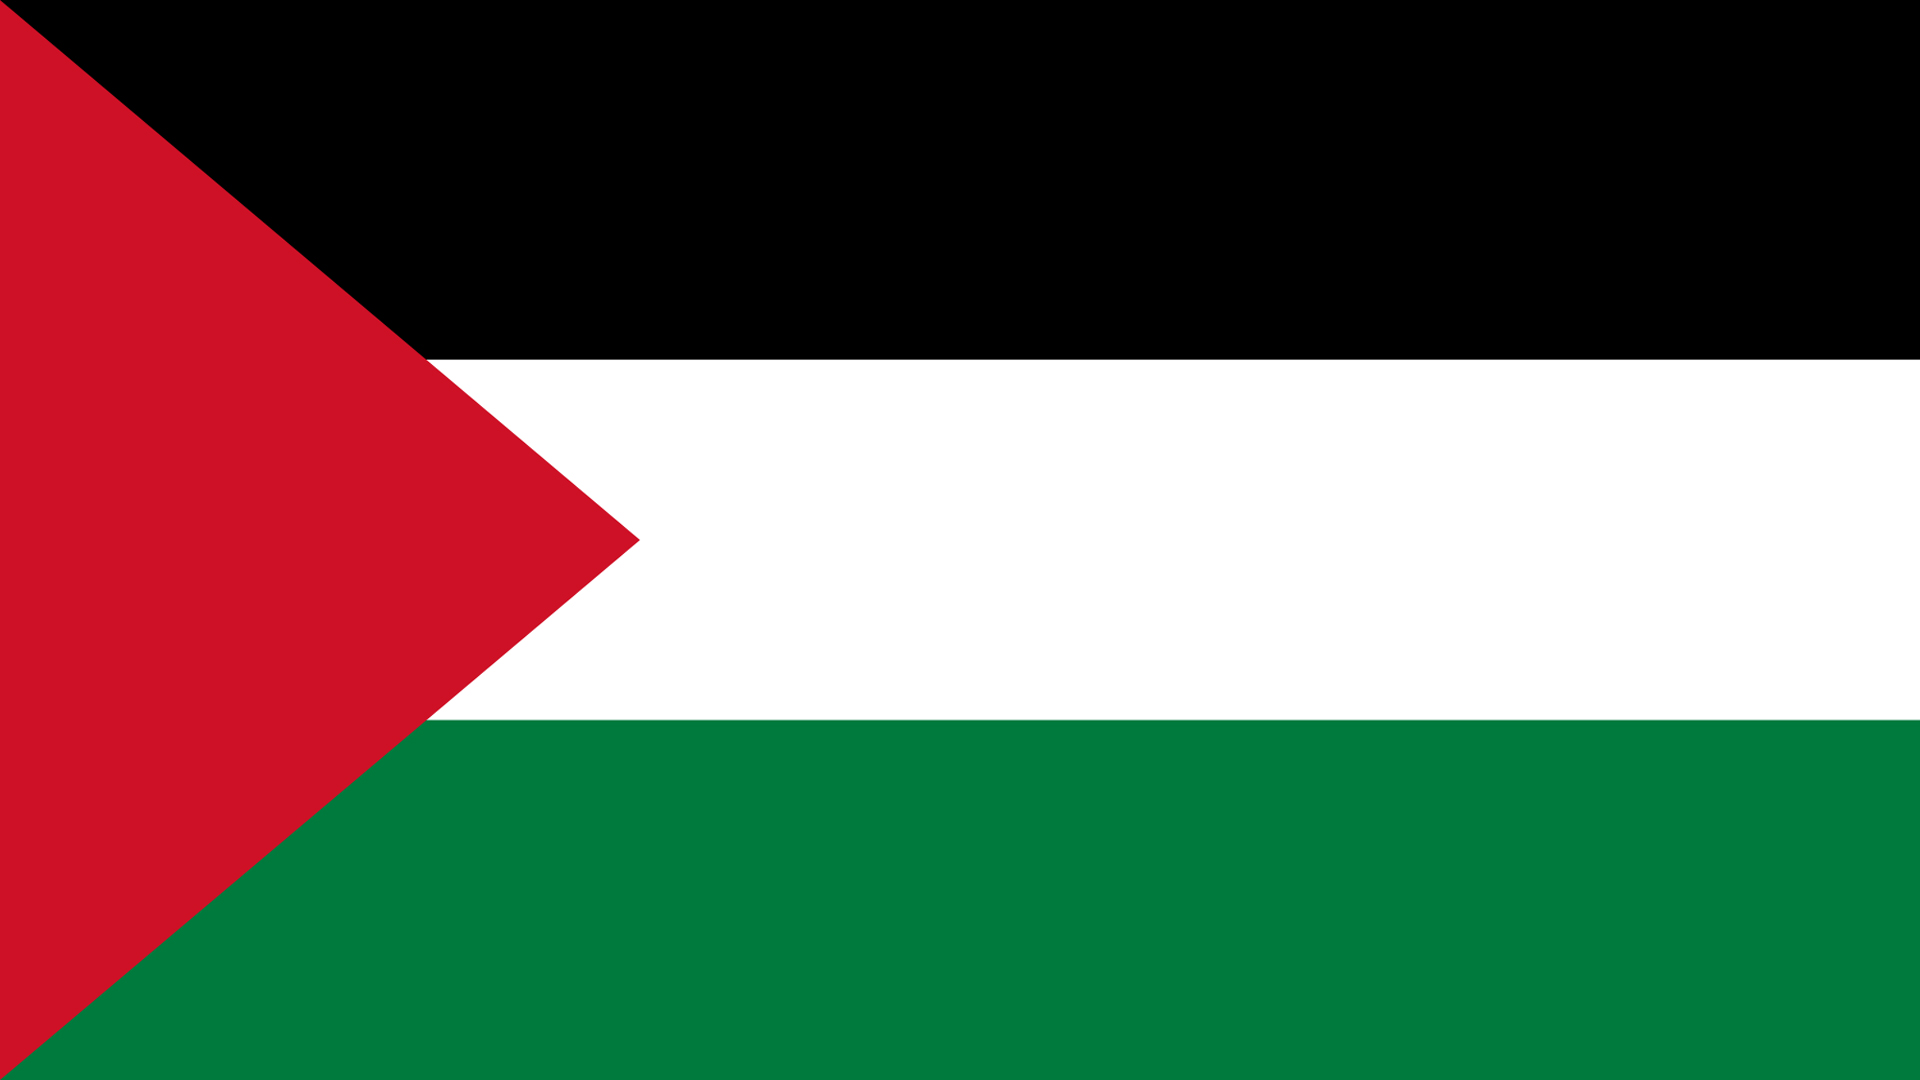 Palestine flag wallpaper high definition high quality widescreen - Palestine flag wallpaper hd ...